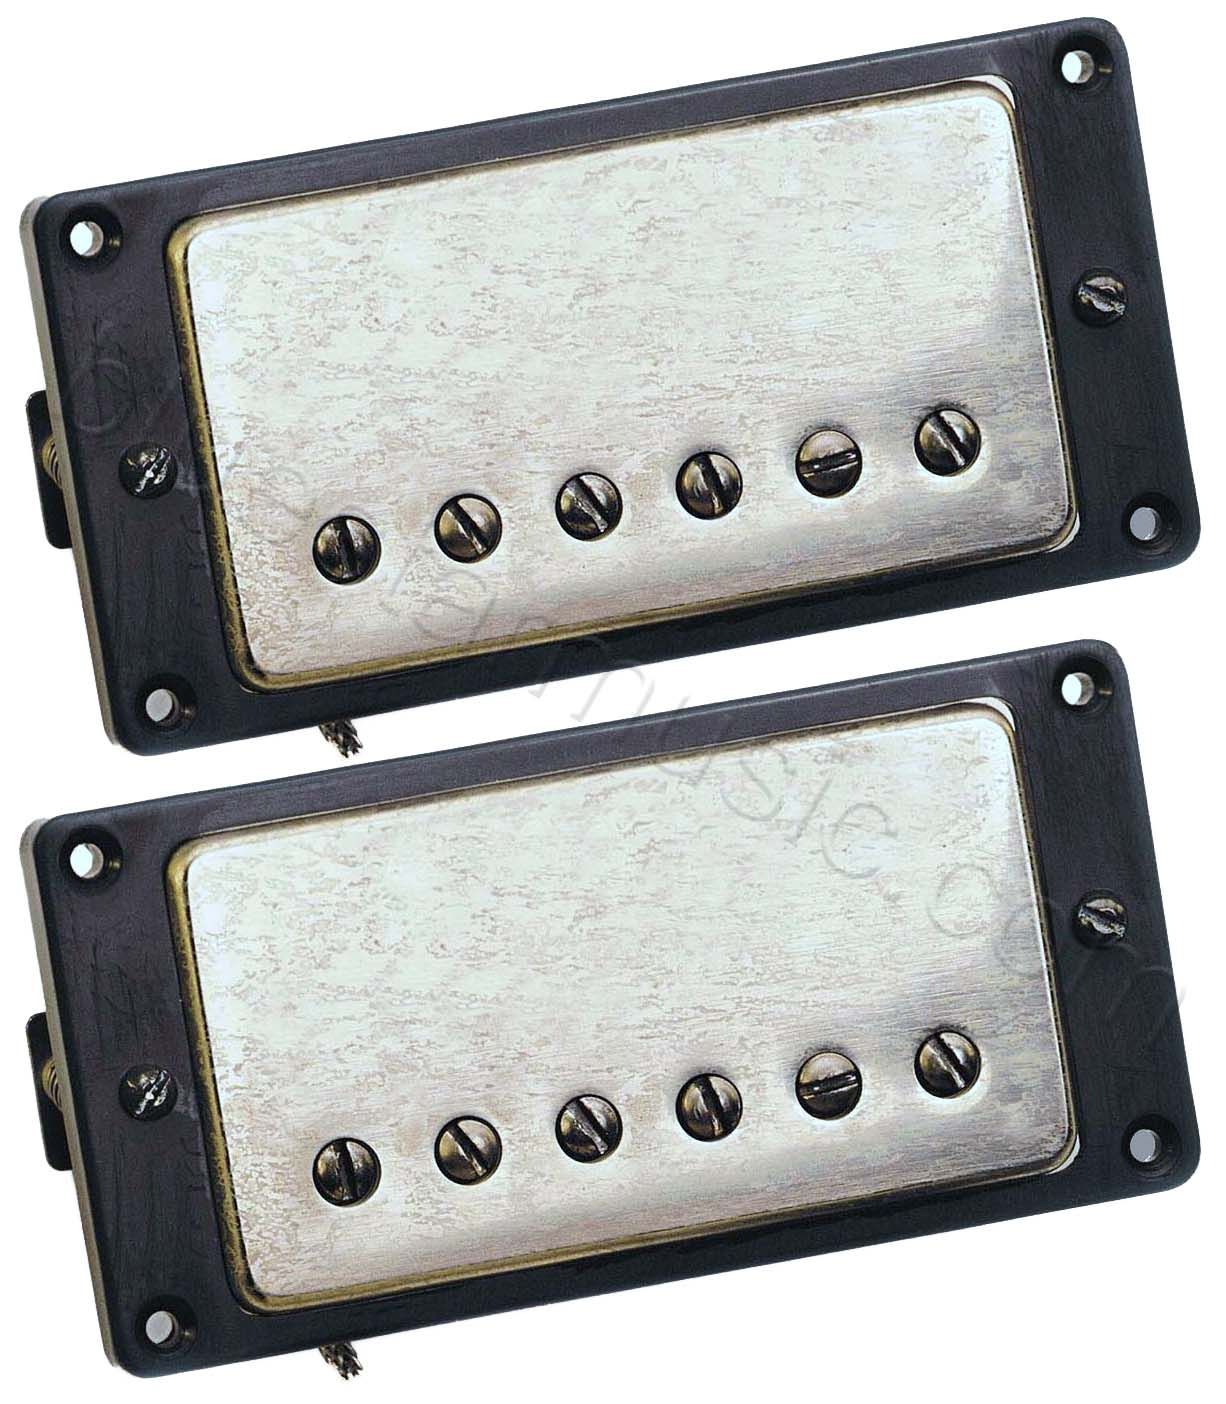 seymour duncan antiquity humbucker bridge neck pickup set aged nickel covers. Black Bedroom Furniture Sets. Home Design Ideas